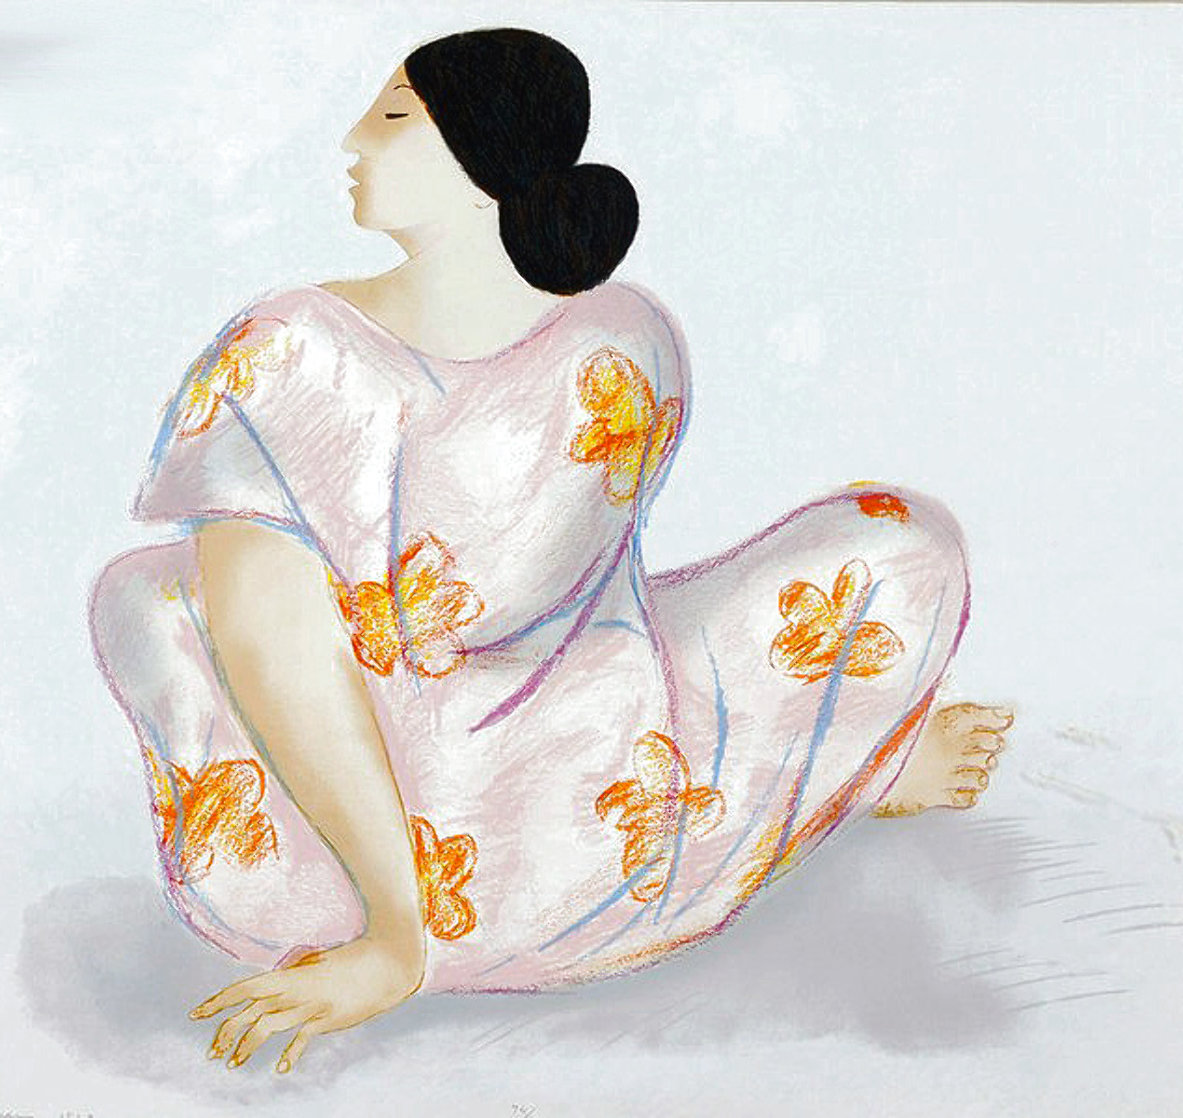 Woman From Maui State I 1983 Limited Edition Print by R.C. Gorman